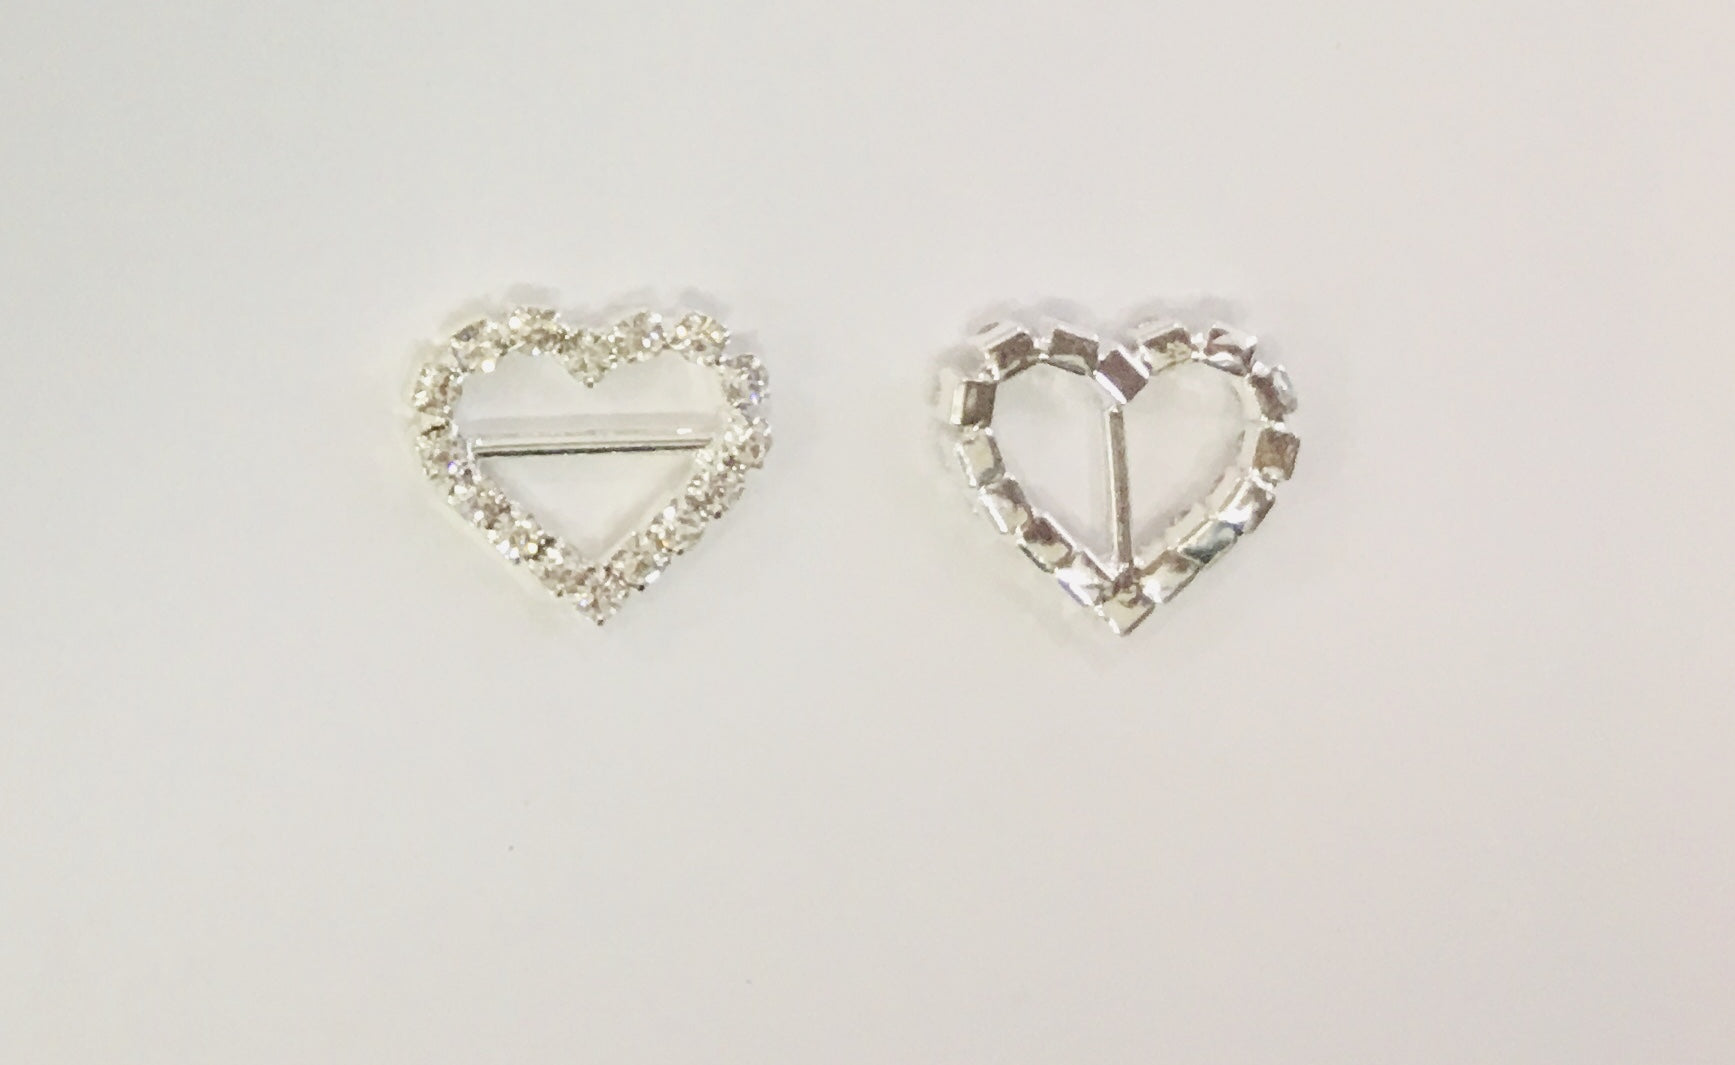 Embellishment - Rhinestone Heart - shabbyflowers.com